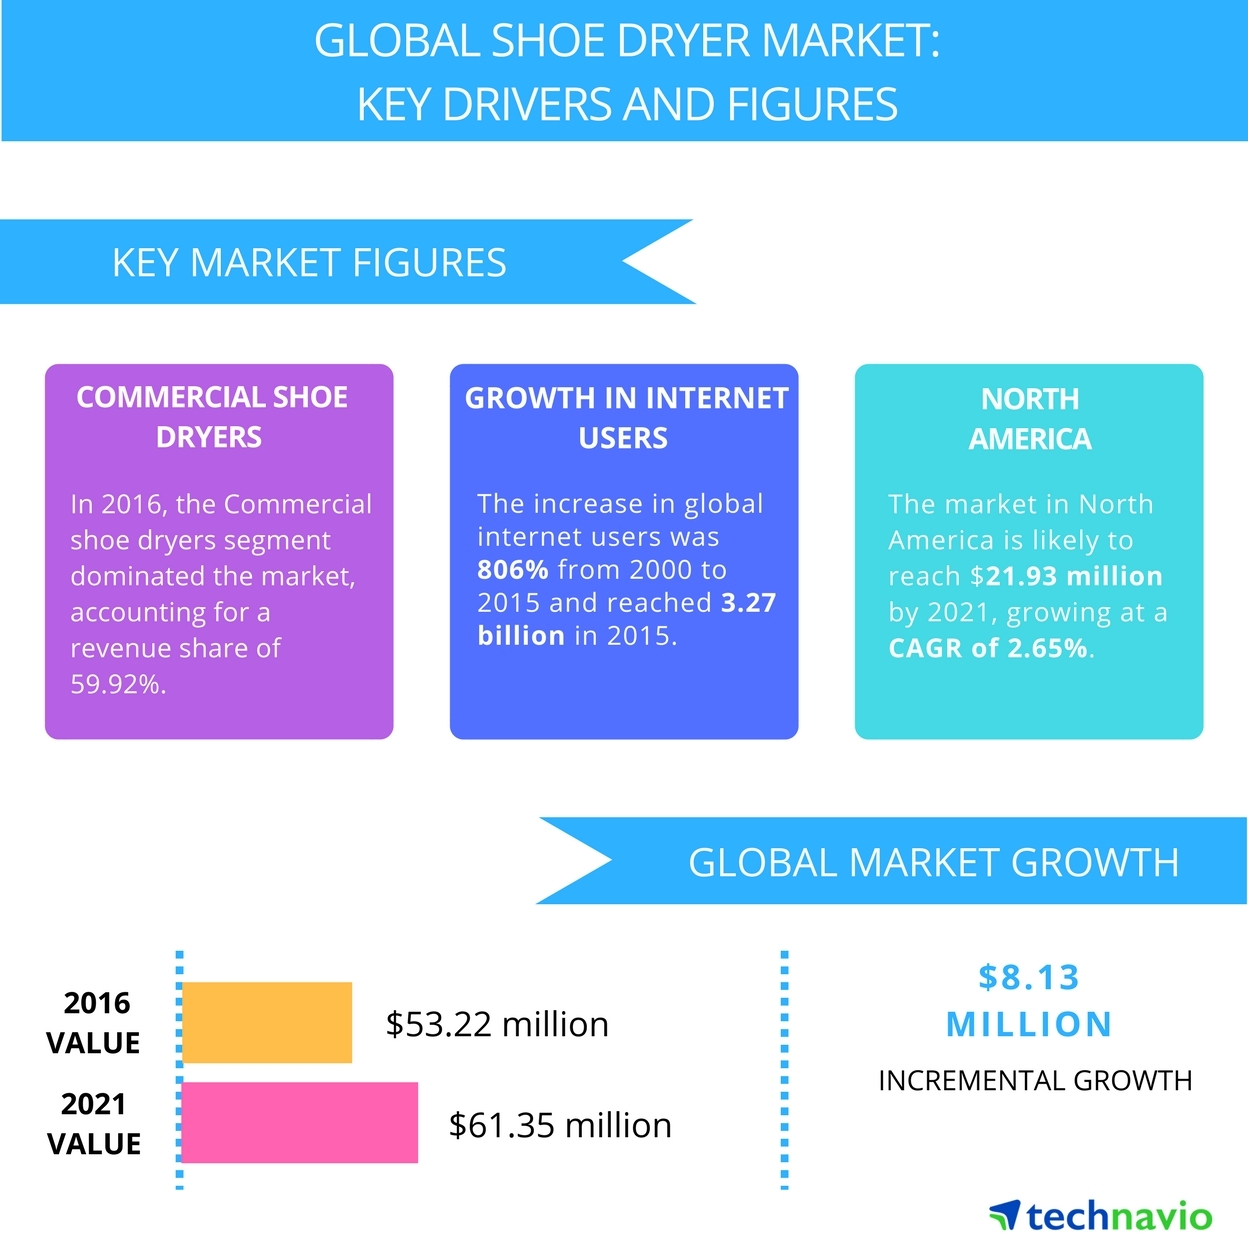 Technavio has published a new report on the global shoe dryer market from 2017-2021. (Graphic: Business Wire)